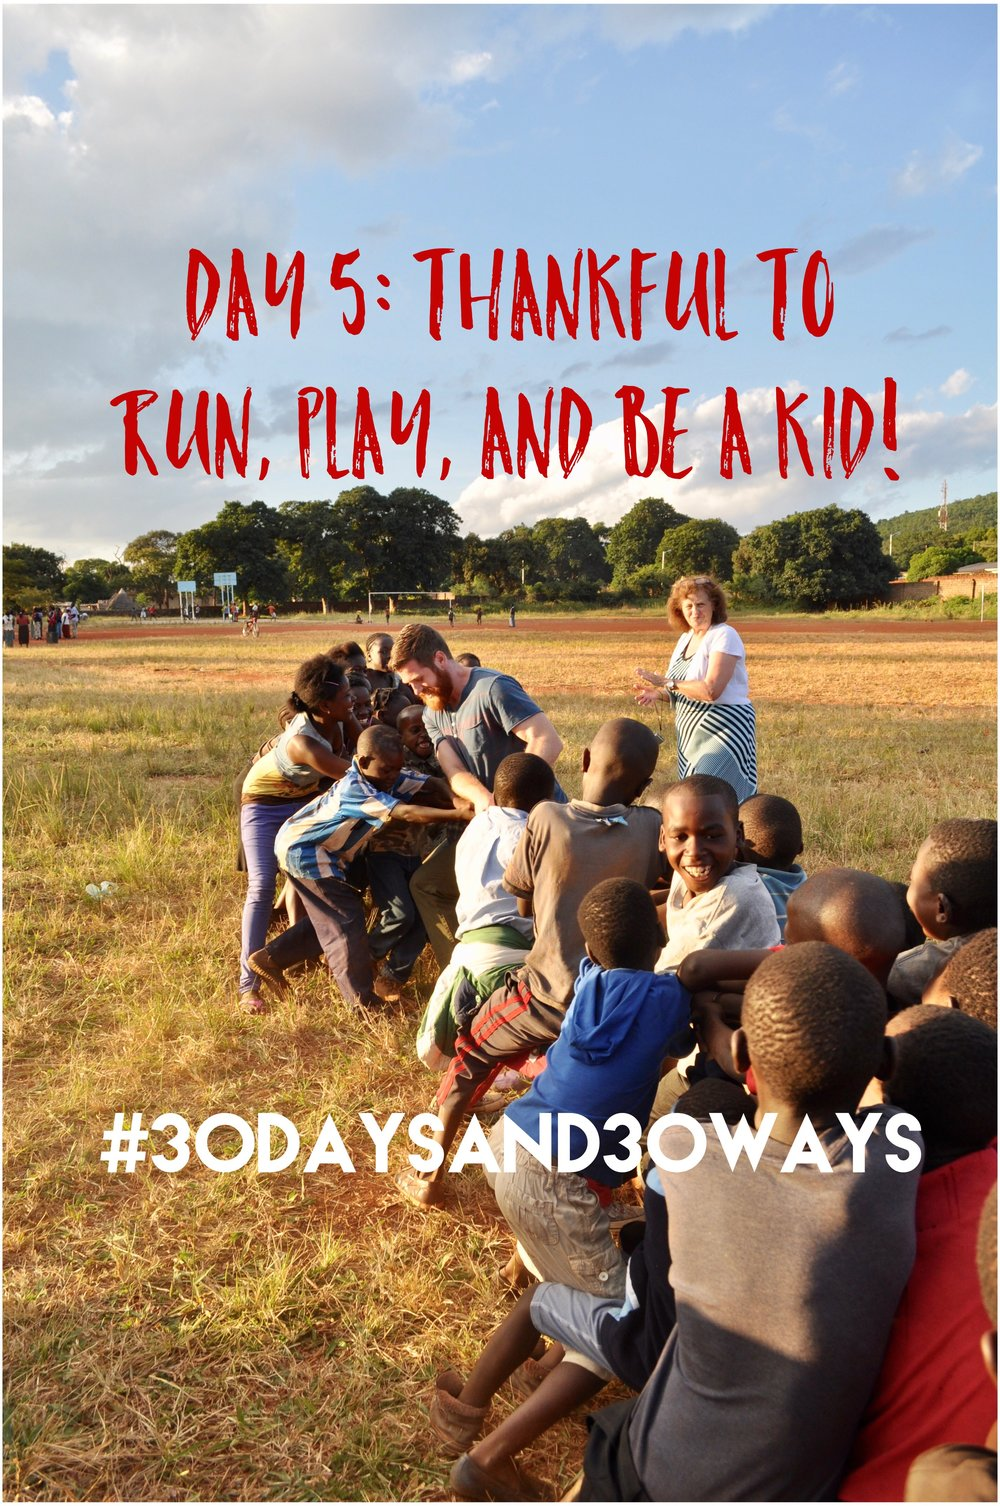 Day 5:  we're thankful for a space to run, play, and be a kid!! Whether you like to go to the playground, play basketball at the park, or enjoy nature on walking trails - everyone can agree its nice to have a place to play! Today we're asking you to be INSPIRED to give $20 to build a community playground at Life Okendewa - a place where kids can be kids!